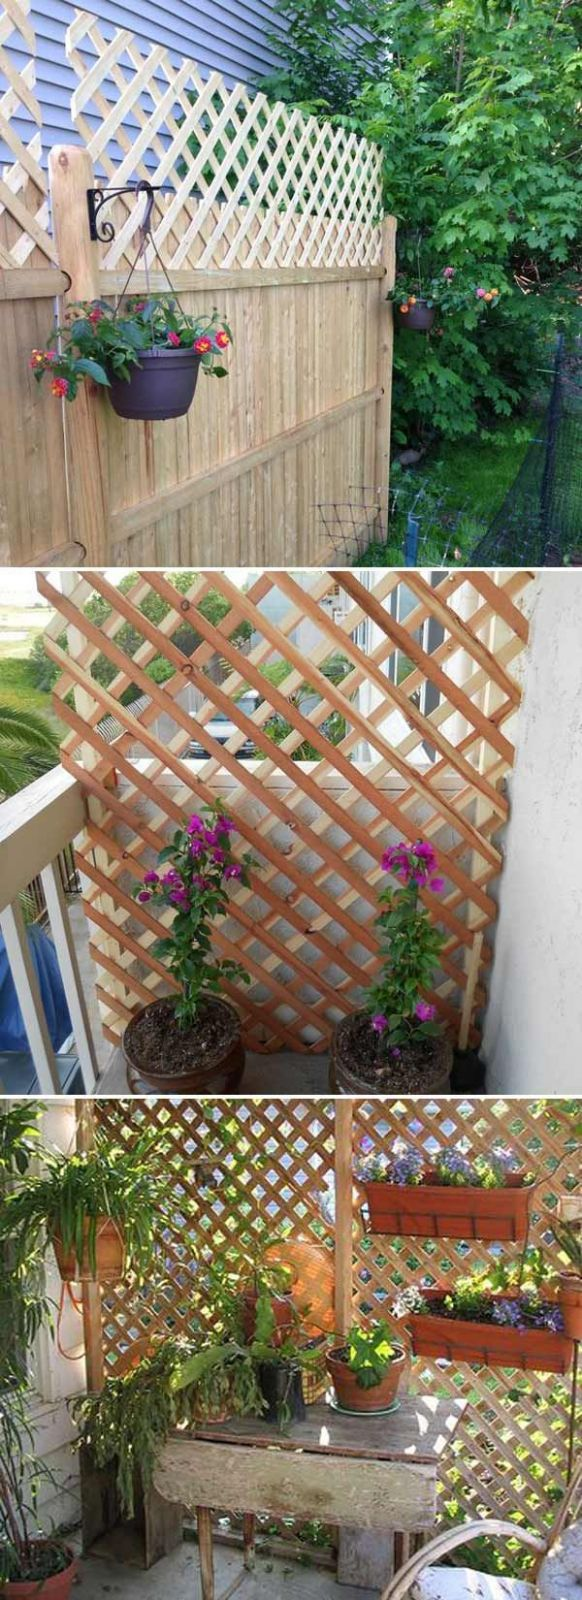 Get added privacy in your yard by building a trellis or lattice ..